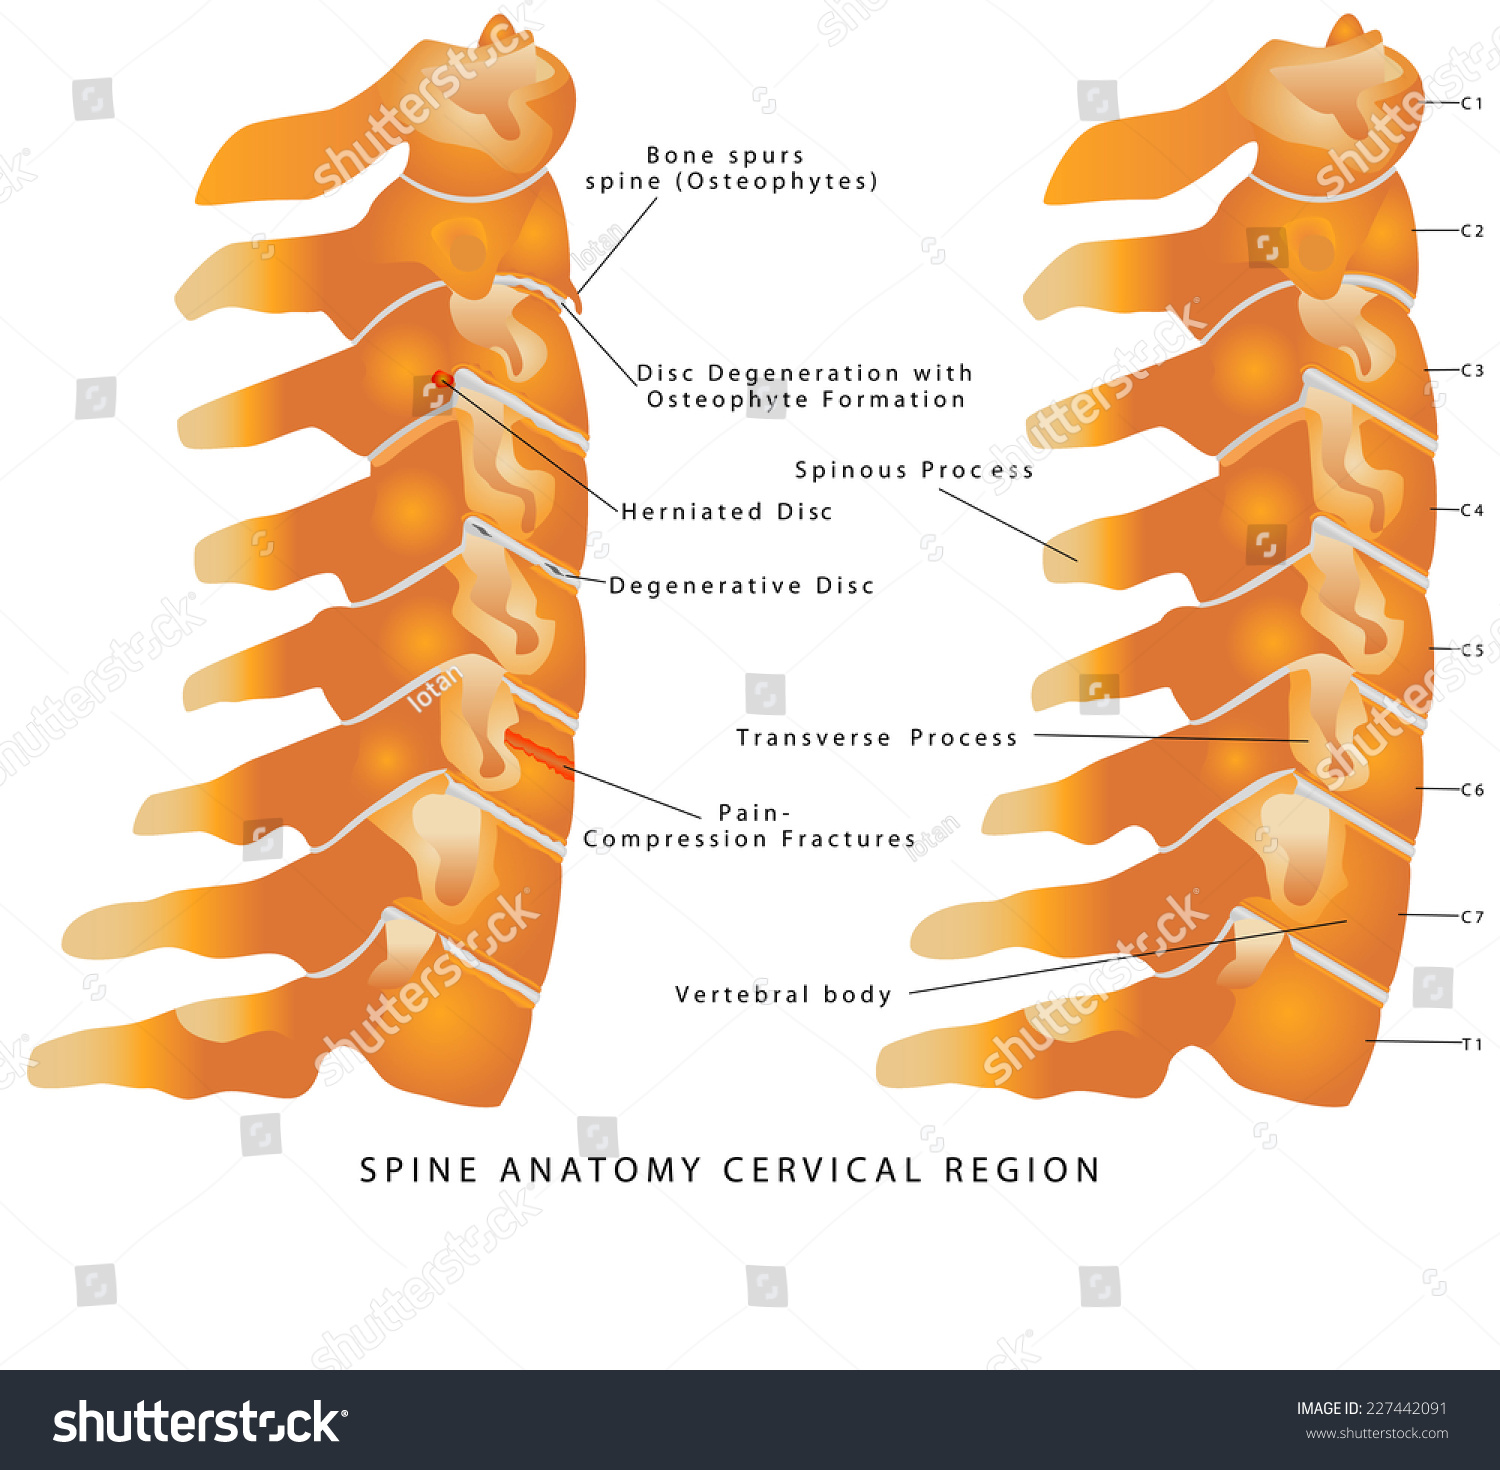 Cervical Spine Spine Anatomy Cervical Region Stock Vector 227442091 ...